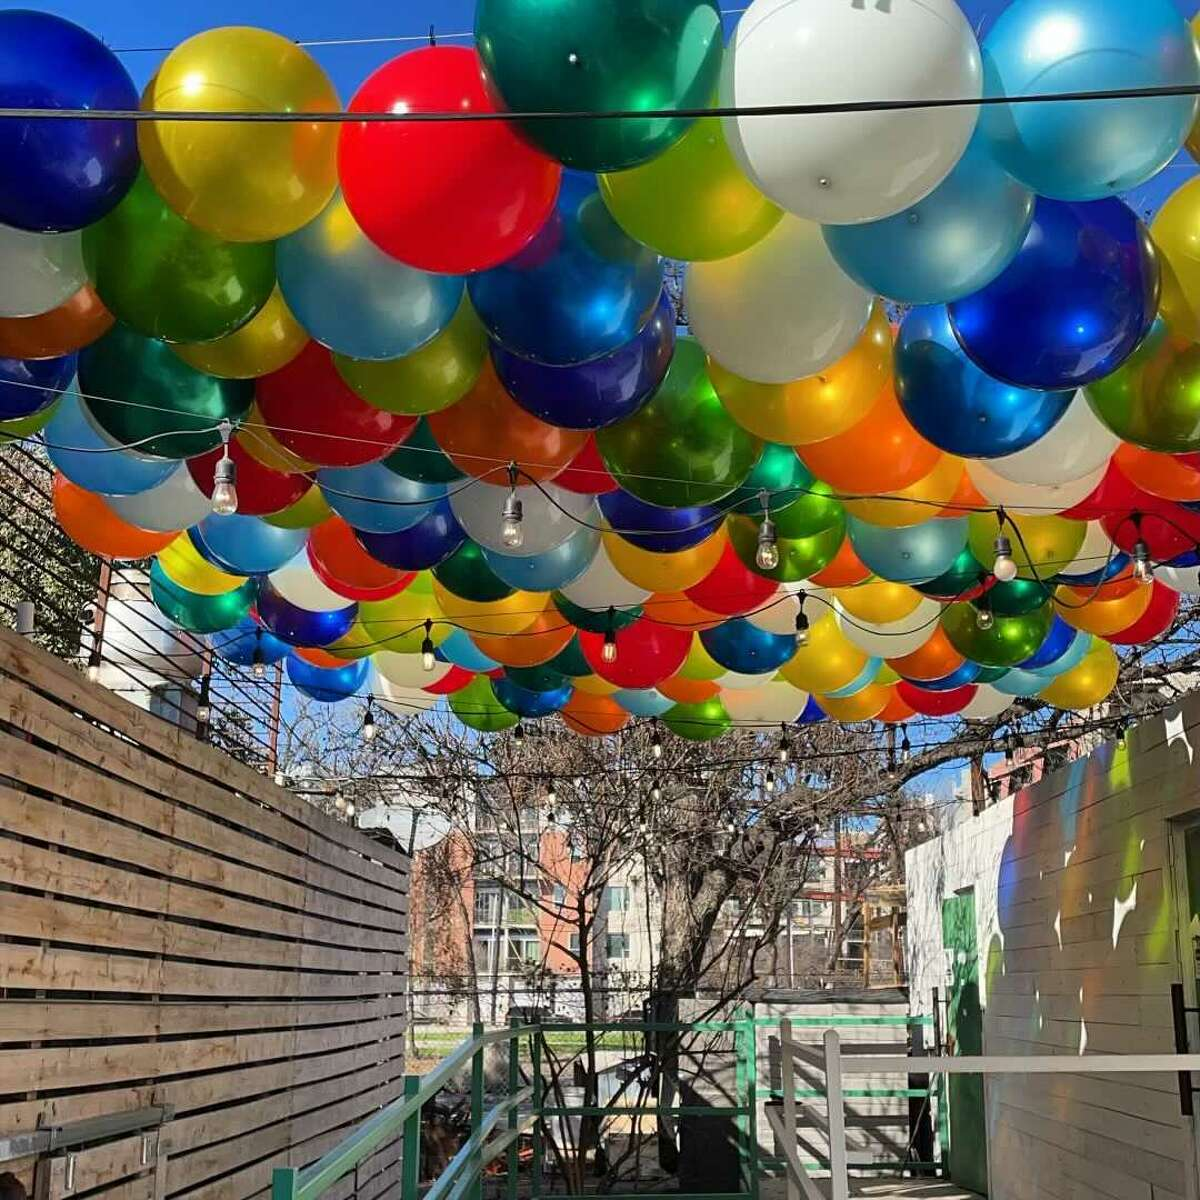 Elsewhere took out its umbrella ceiling and replaced it with 240 big vinyl balloons, according to owner Terrin Fuhrmann.